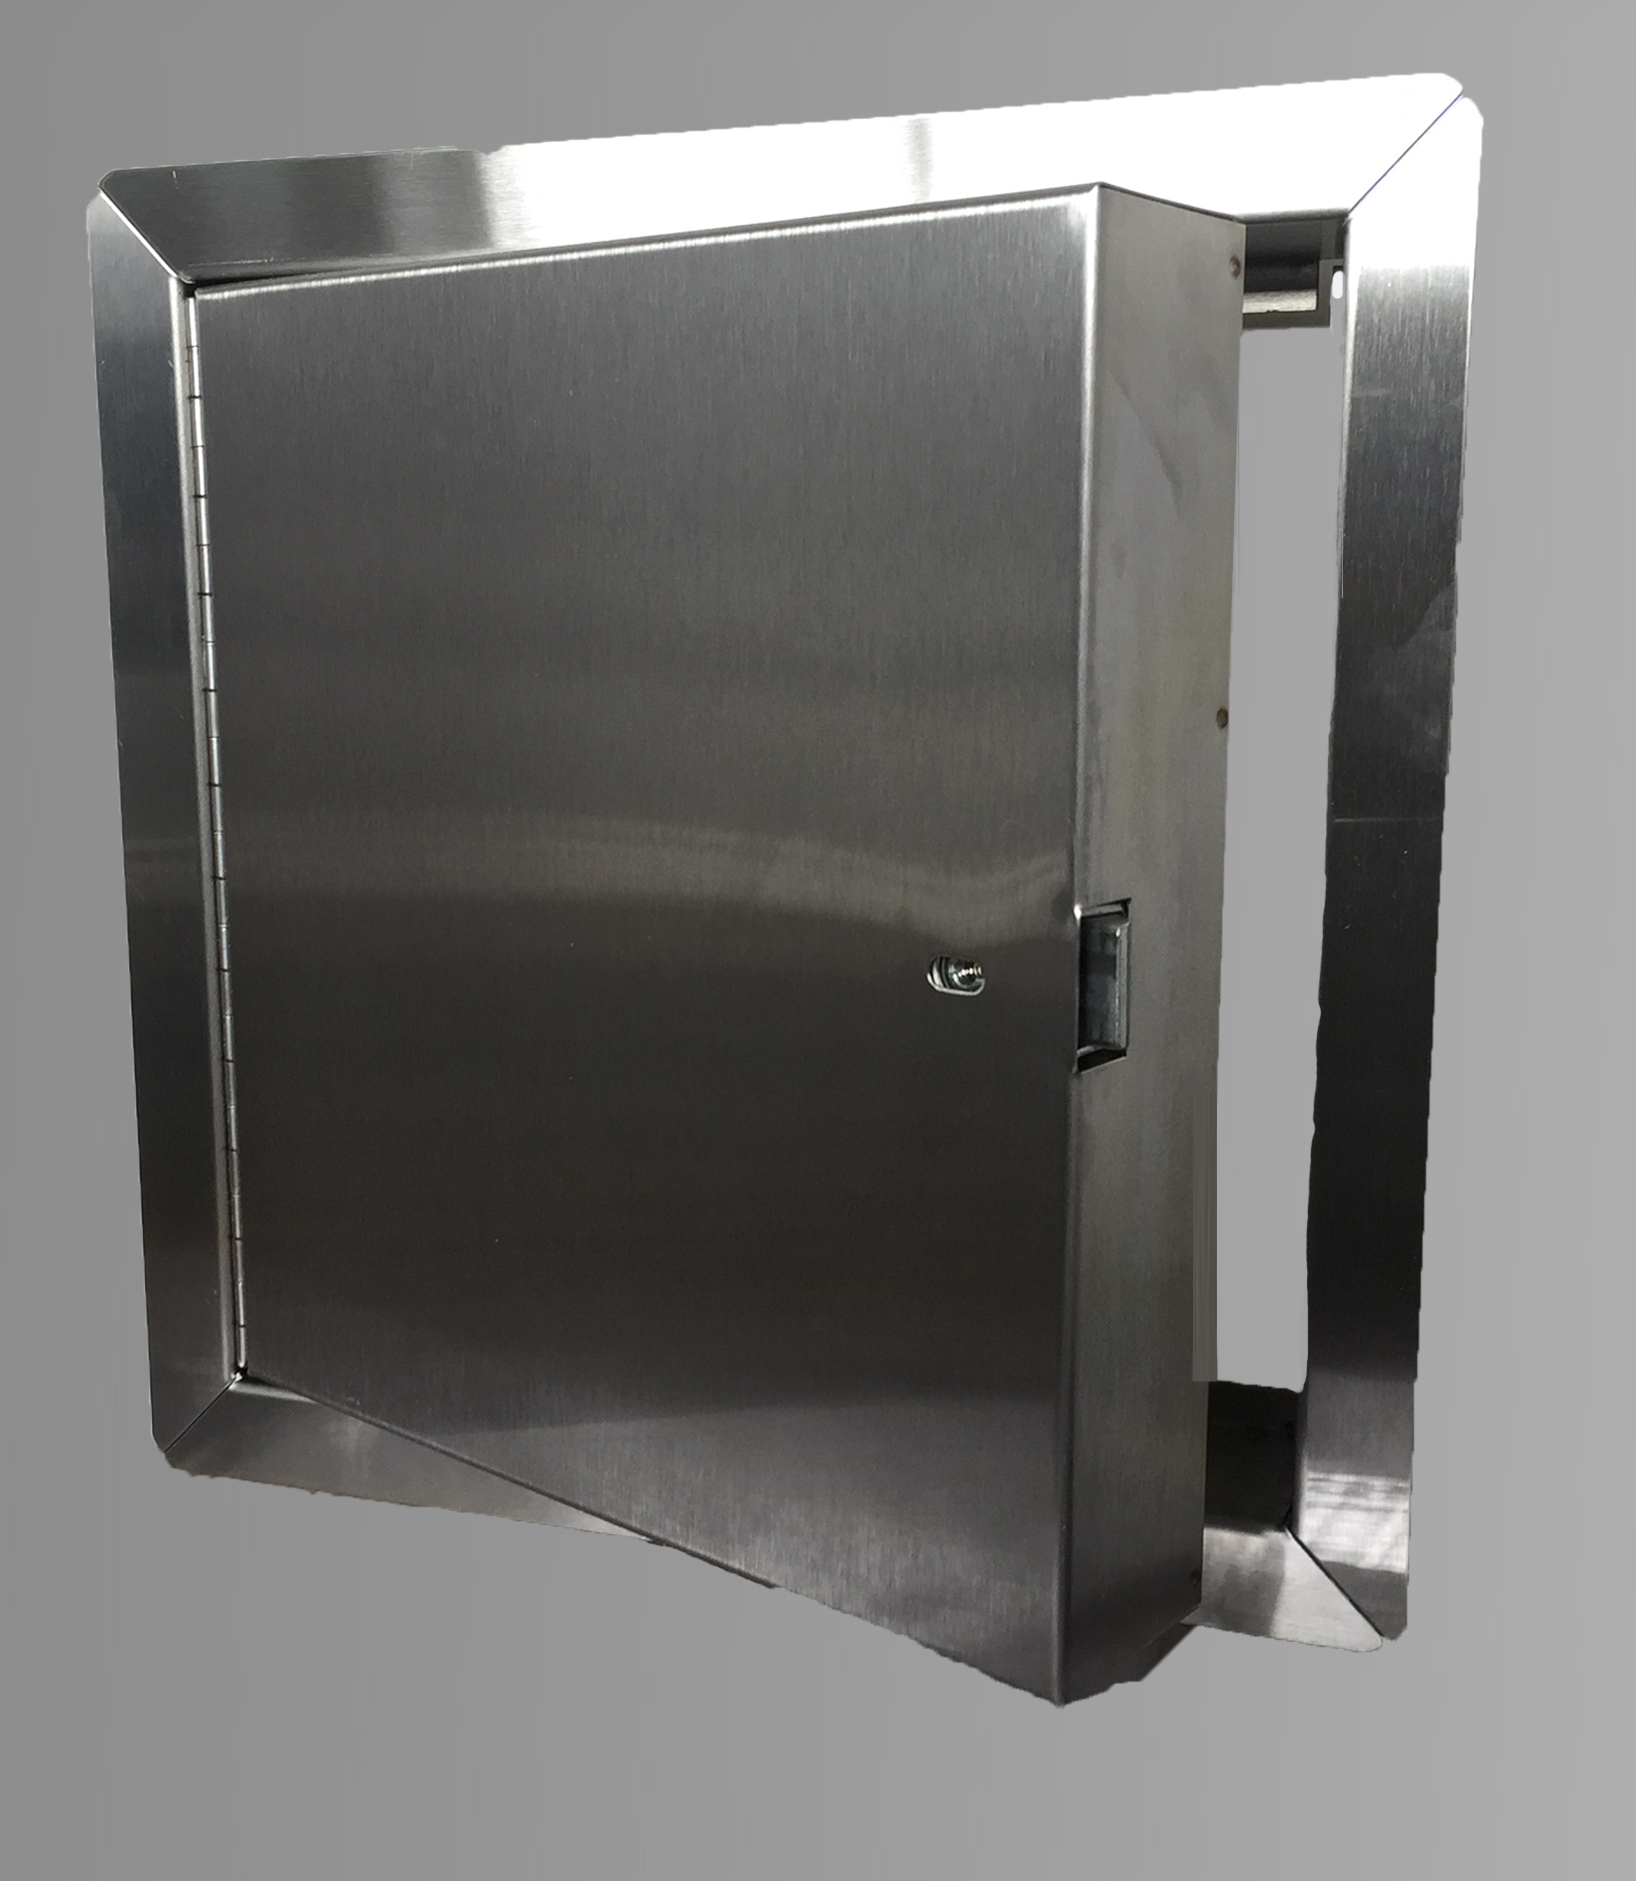 48 X 48 Fire Rated Insulated Access Door With Flange Stainless Steel